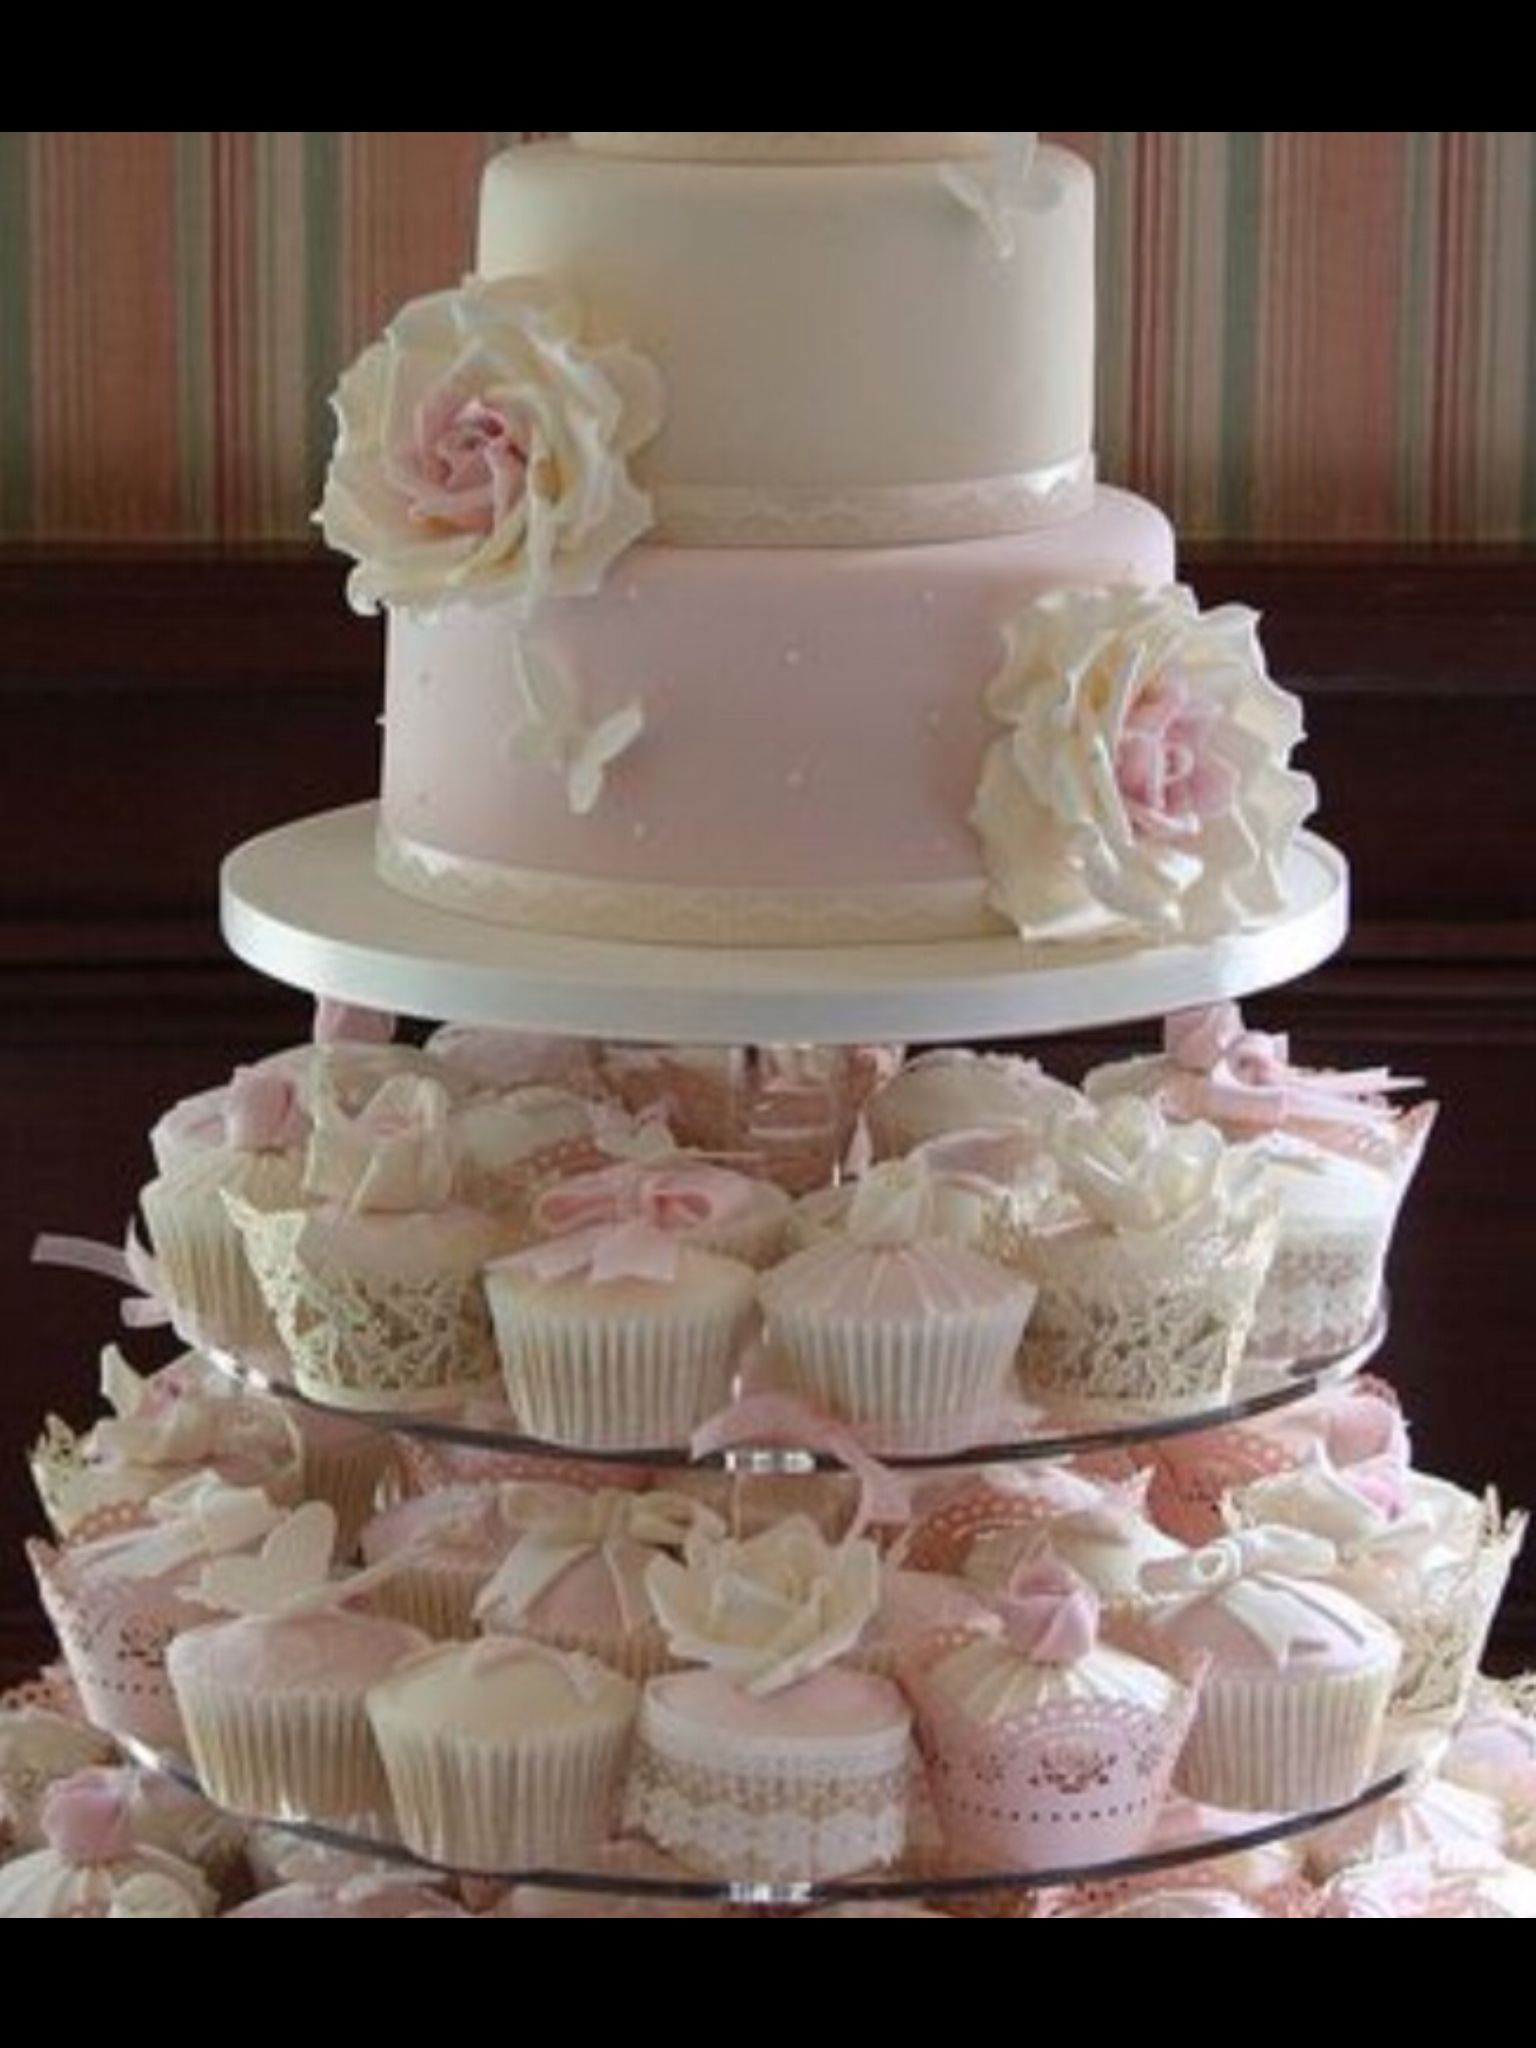 Wedding cakes with cupcakes image by Vanessa Cespedes on